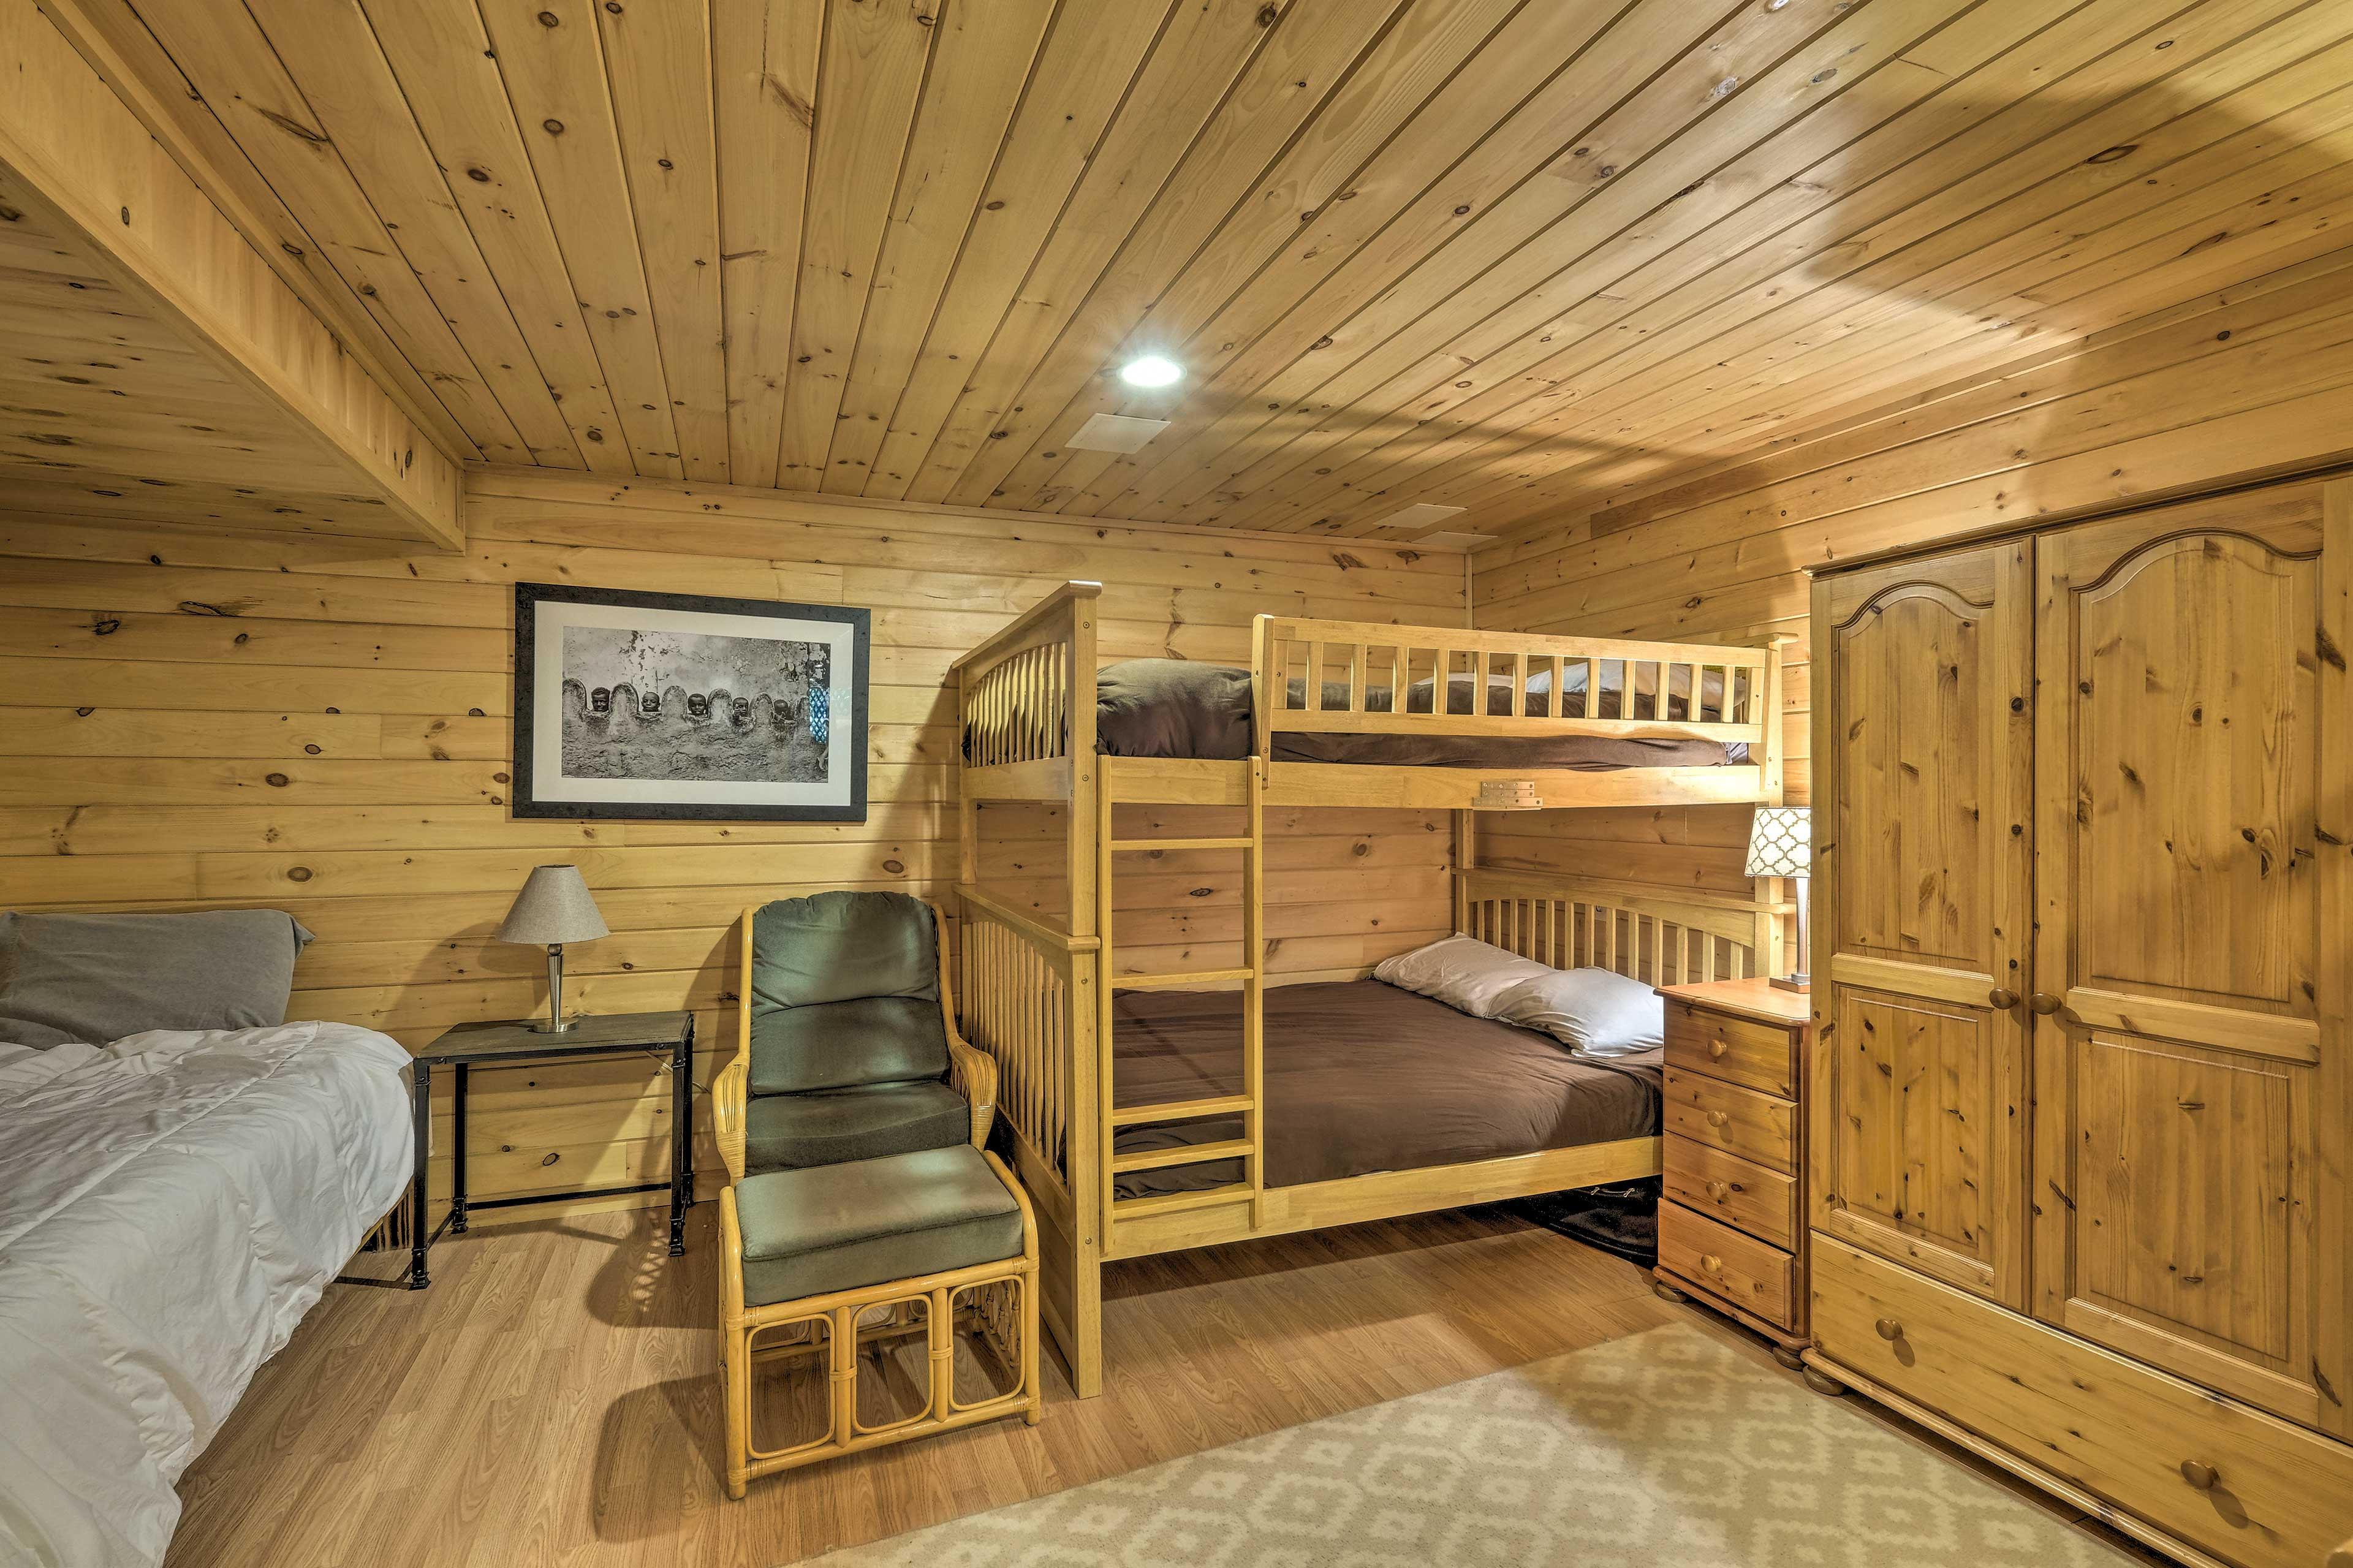 Let the kiddos bunk in here so they can talk and laugh before falling asleep.